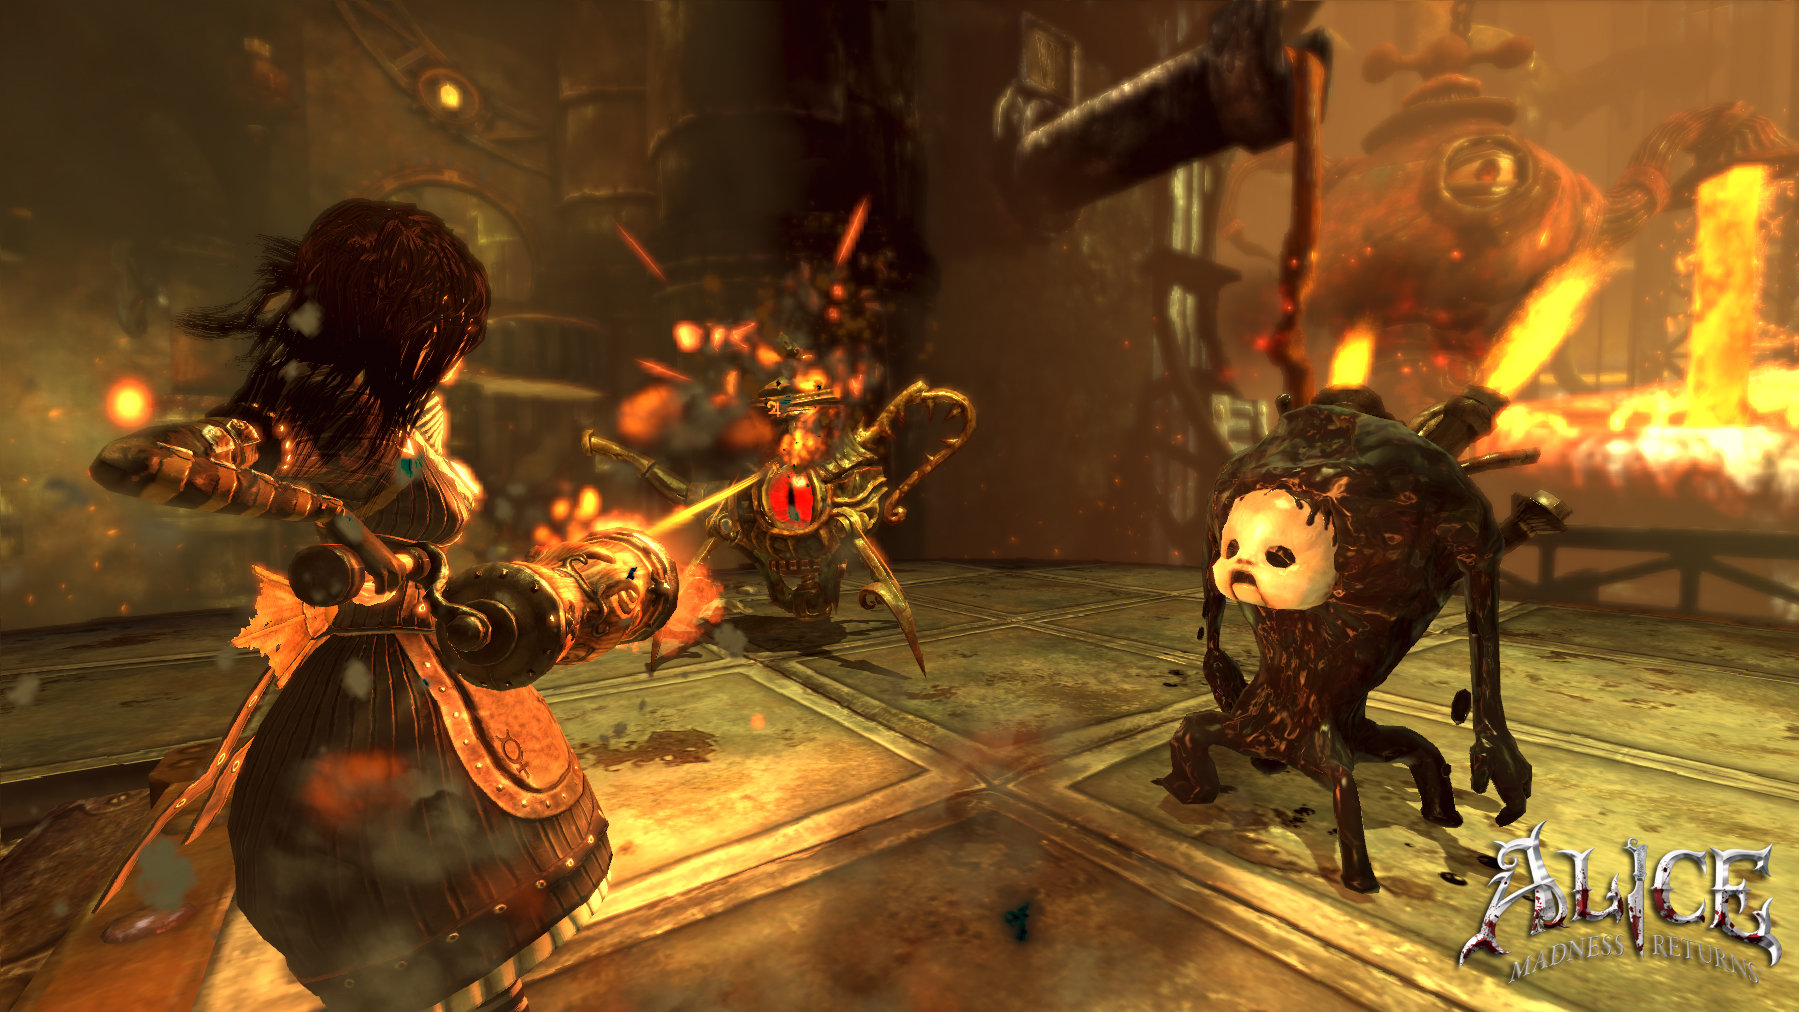 Media asset in full size related to 3dfxzone.it news item entitled as follows: Da Electronic Arts nuovi screenshots di Alice: Madness Returns | Image Name: news14971_3.jpg